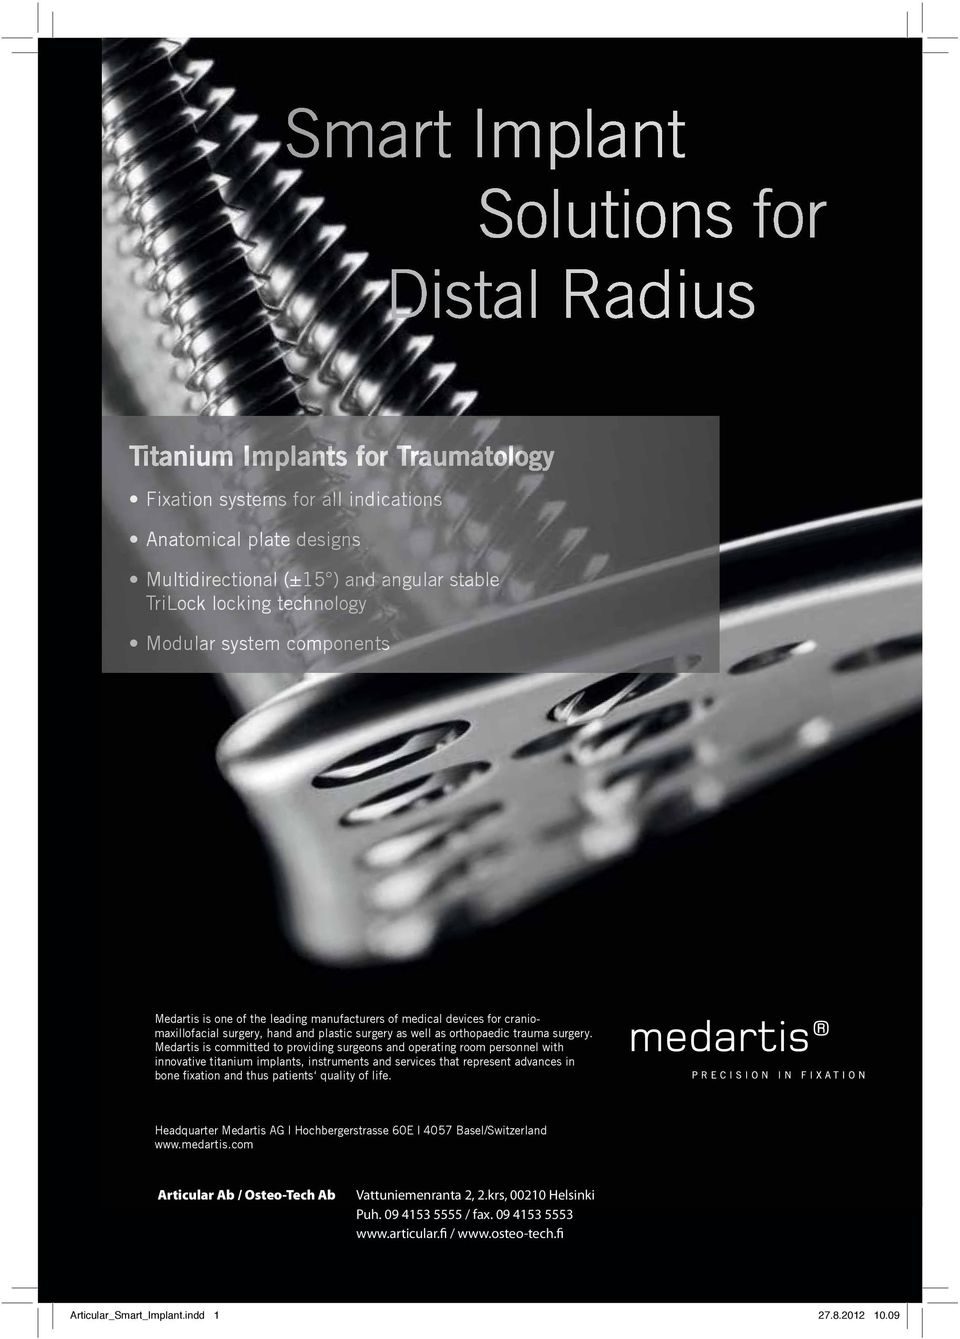 Medartis is committed to providing surgeons and operating room personnel with innovative titanium implants, instruments and services that represent advances in bone xation and thus patients quality